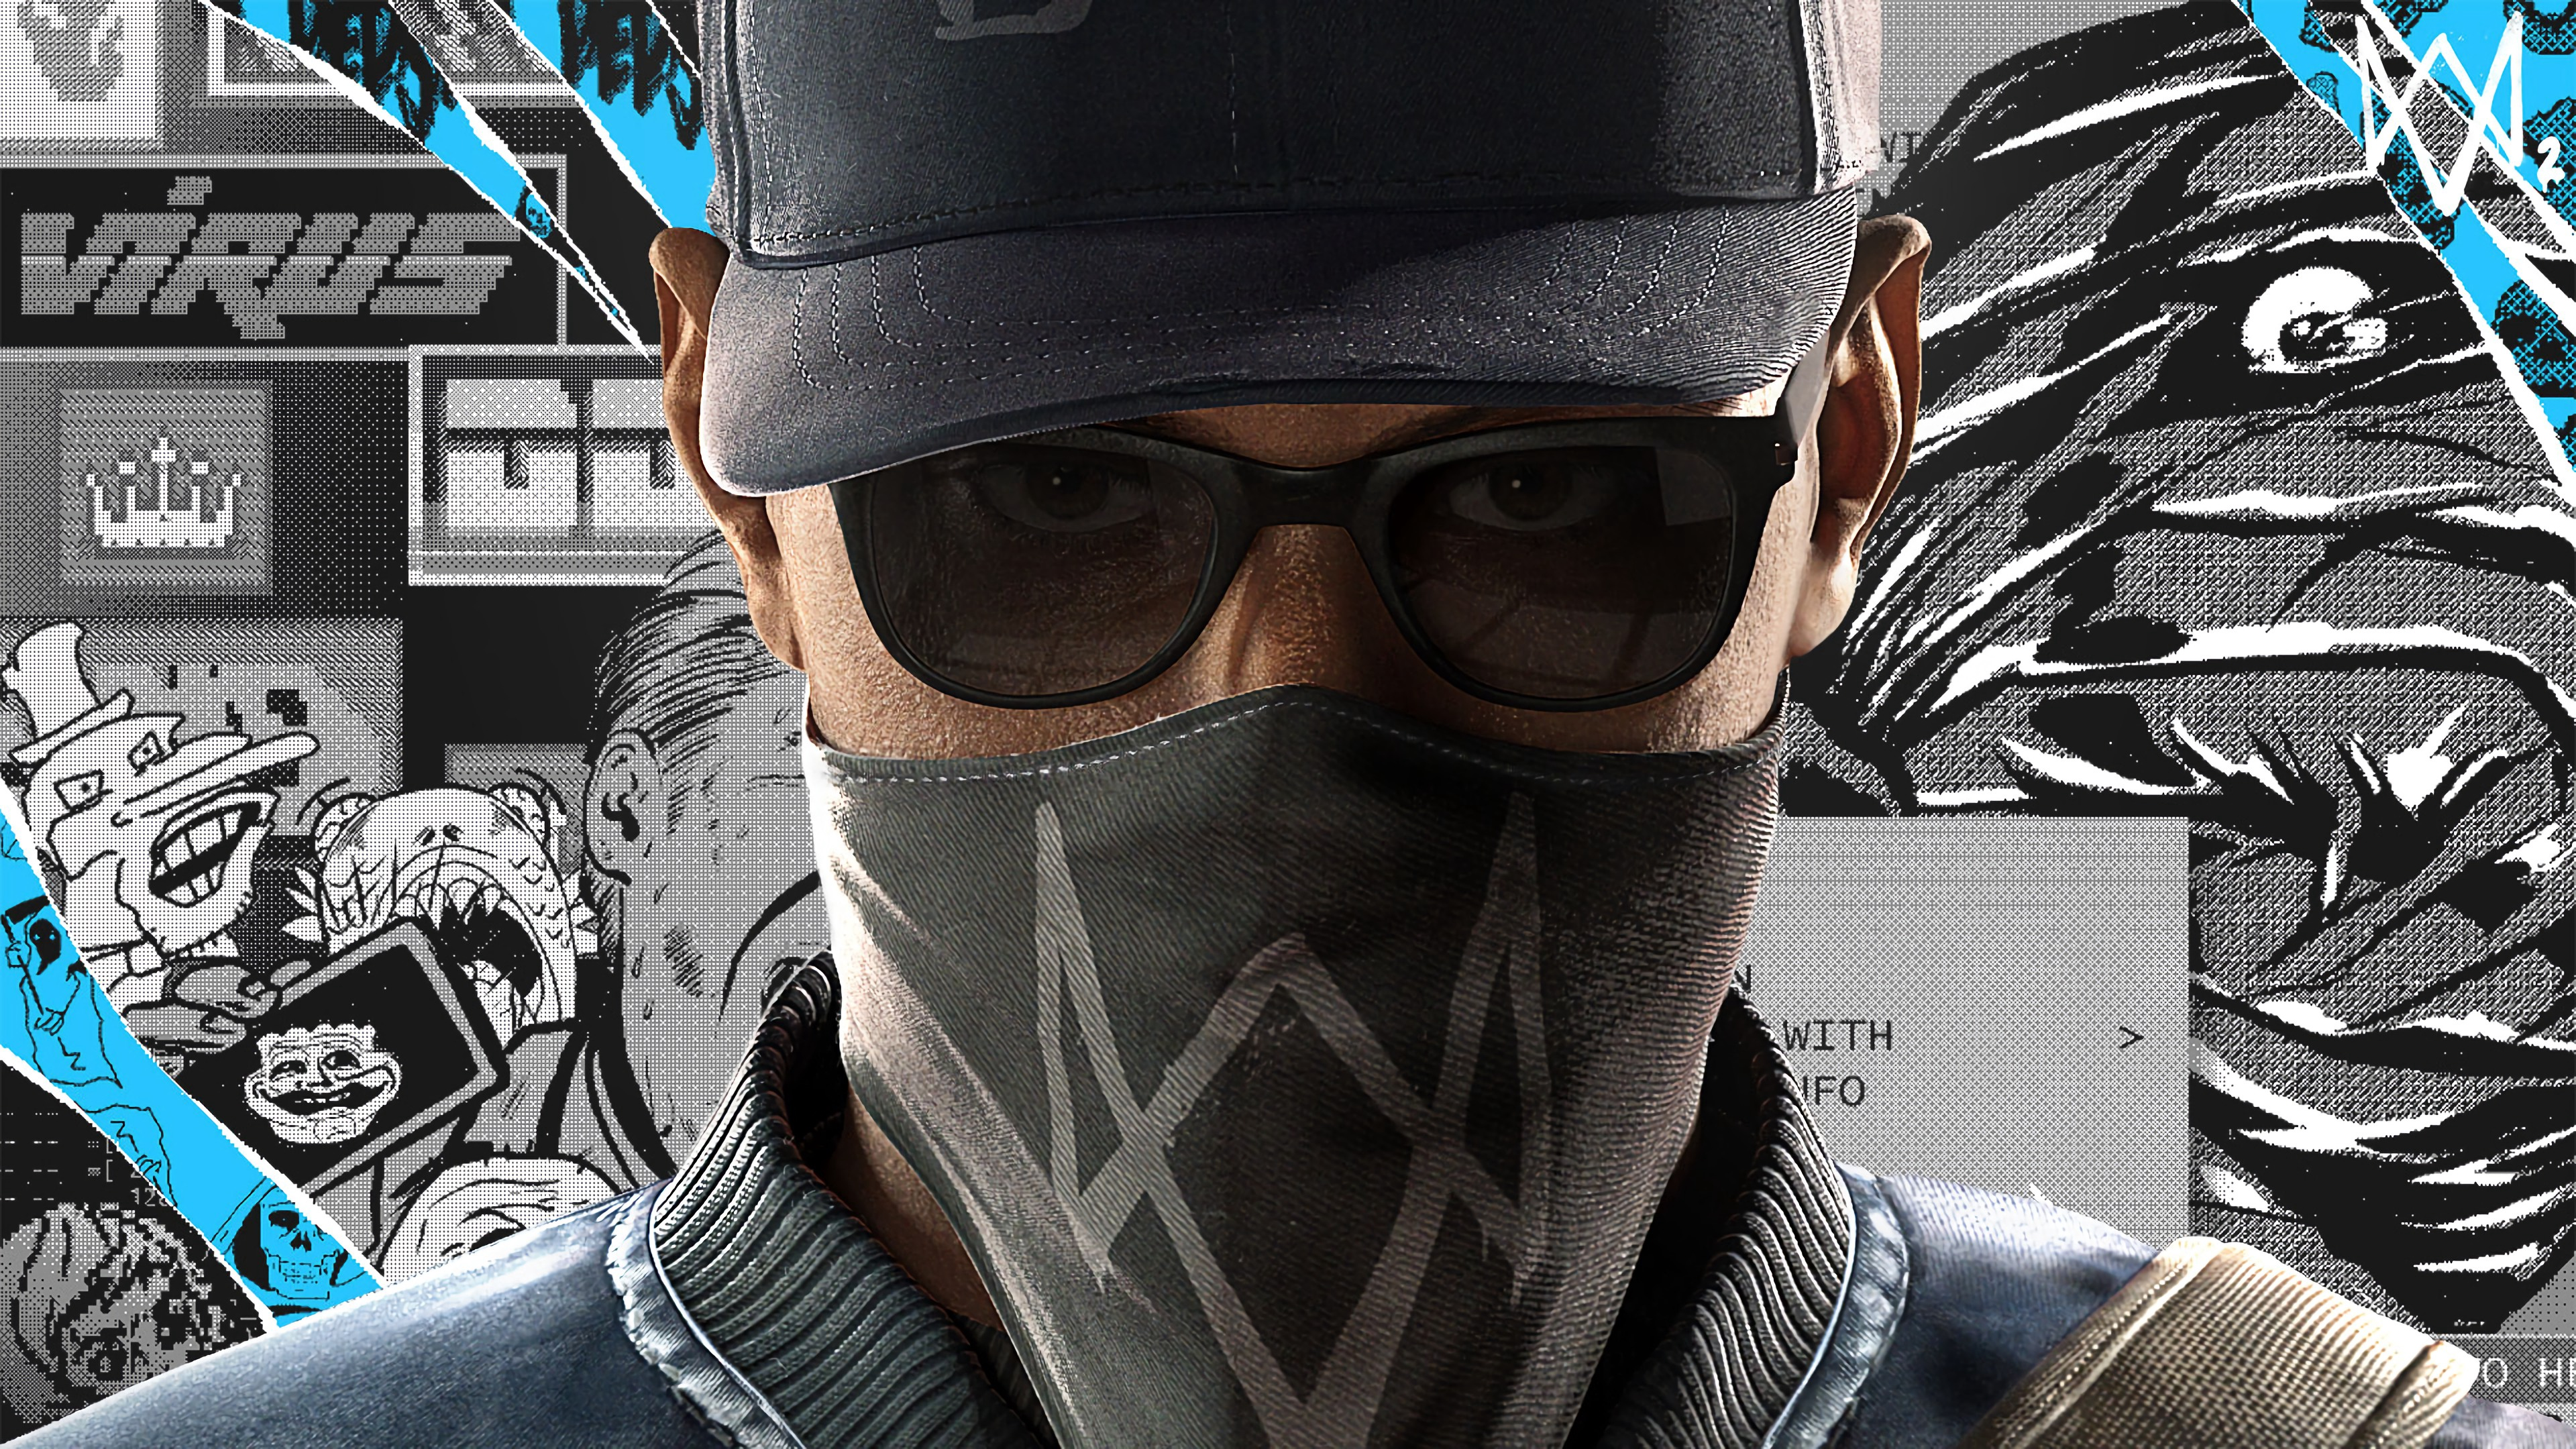 watch dogs 2 marcus holloway face 4k 1538944999 - watch dogs 2, marcus holloway, face 4k - watch dogs 2, marcus holloway, Face